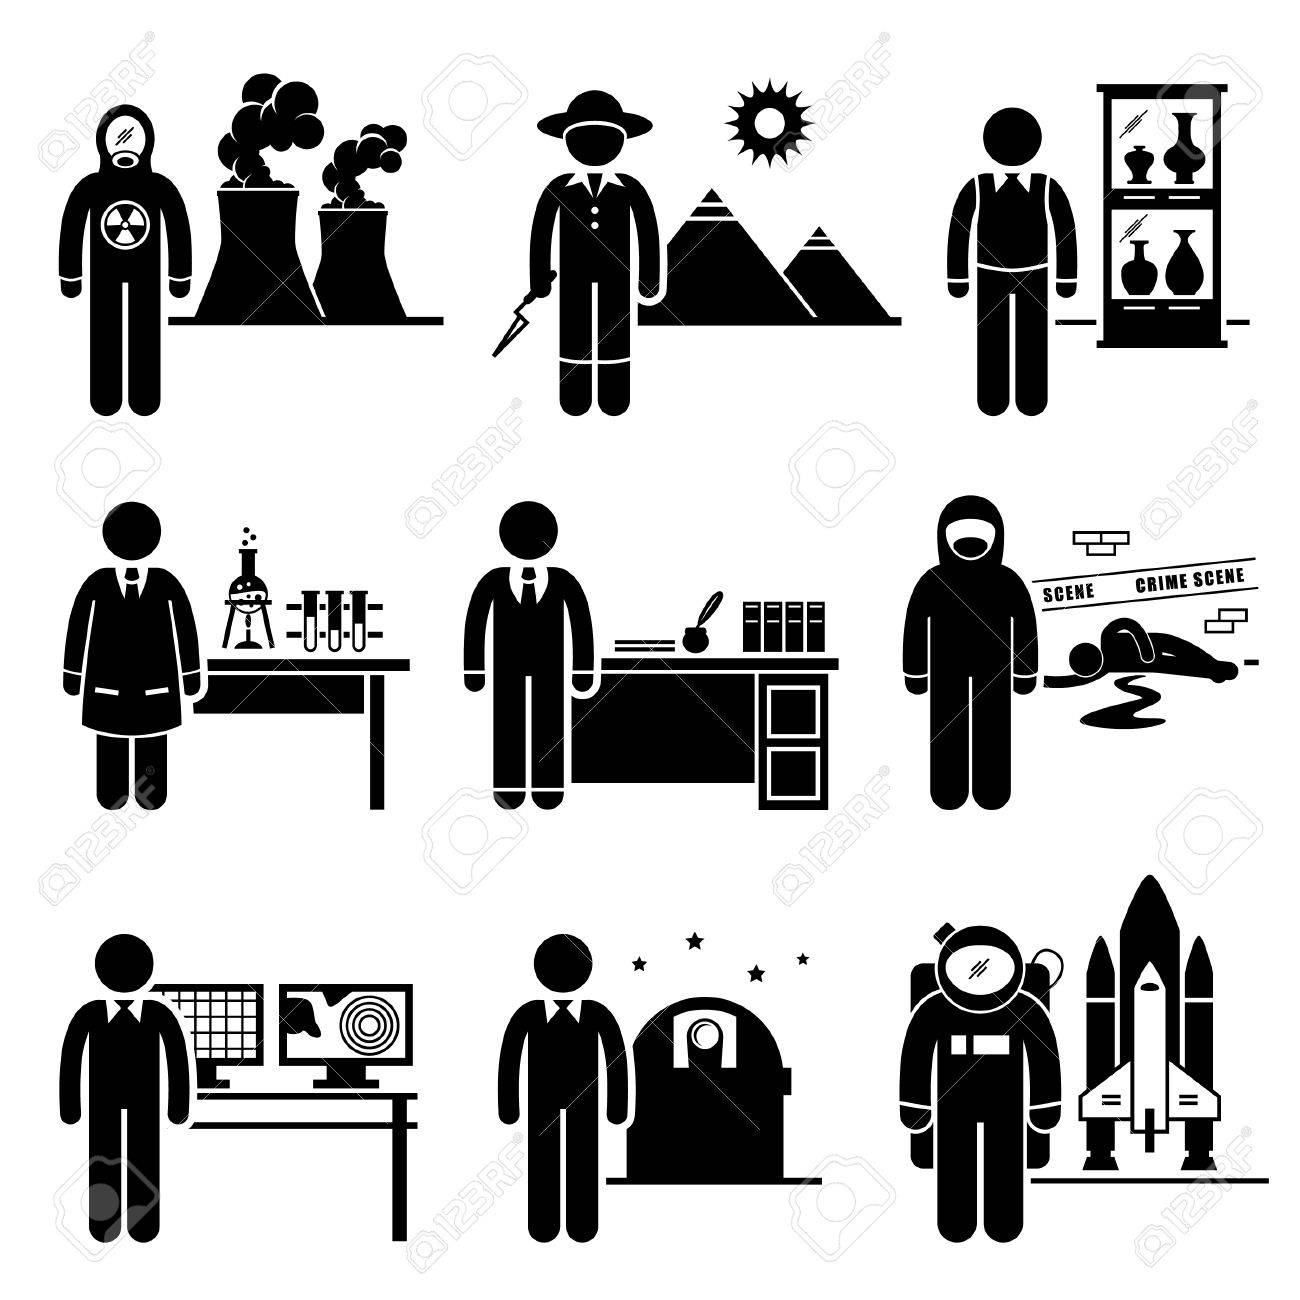 Scientist Professor Jobs Occupations Careers - Nuclear, Archaeologists, Museum Curator, Chemist, Historian, Forensic, Meteorologist, Astronomer, Astronaut - Stick Figure Pictogram Stock Vector - 24227342